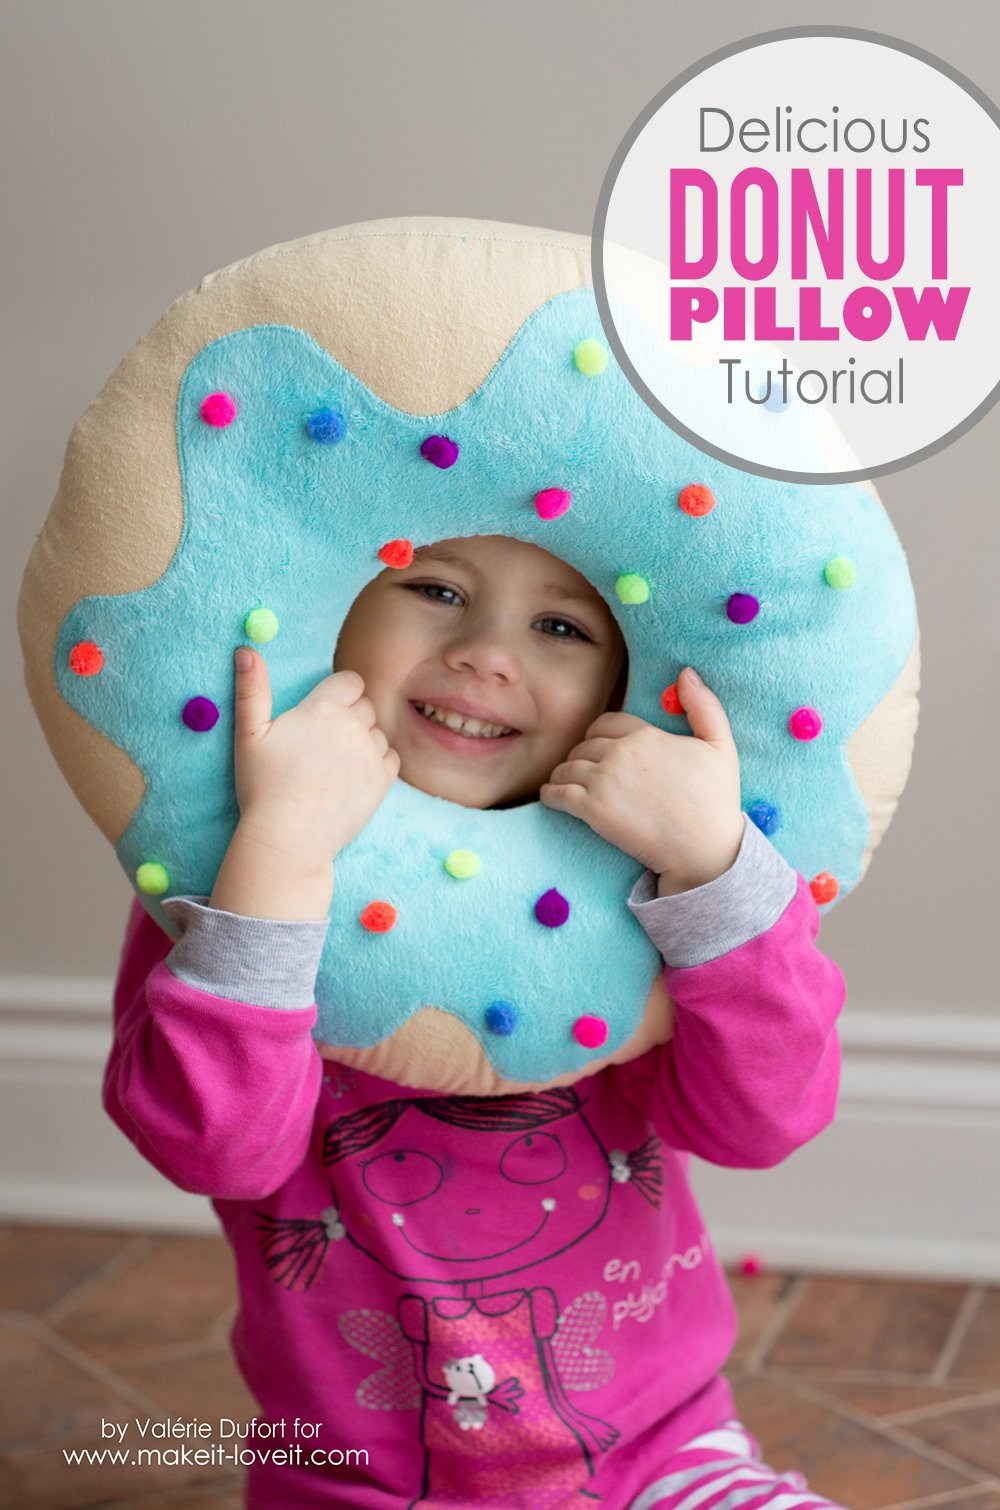 Delicious Donut Pillow Tutorial